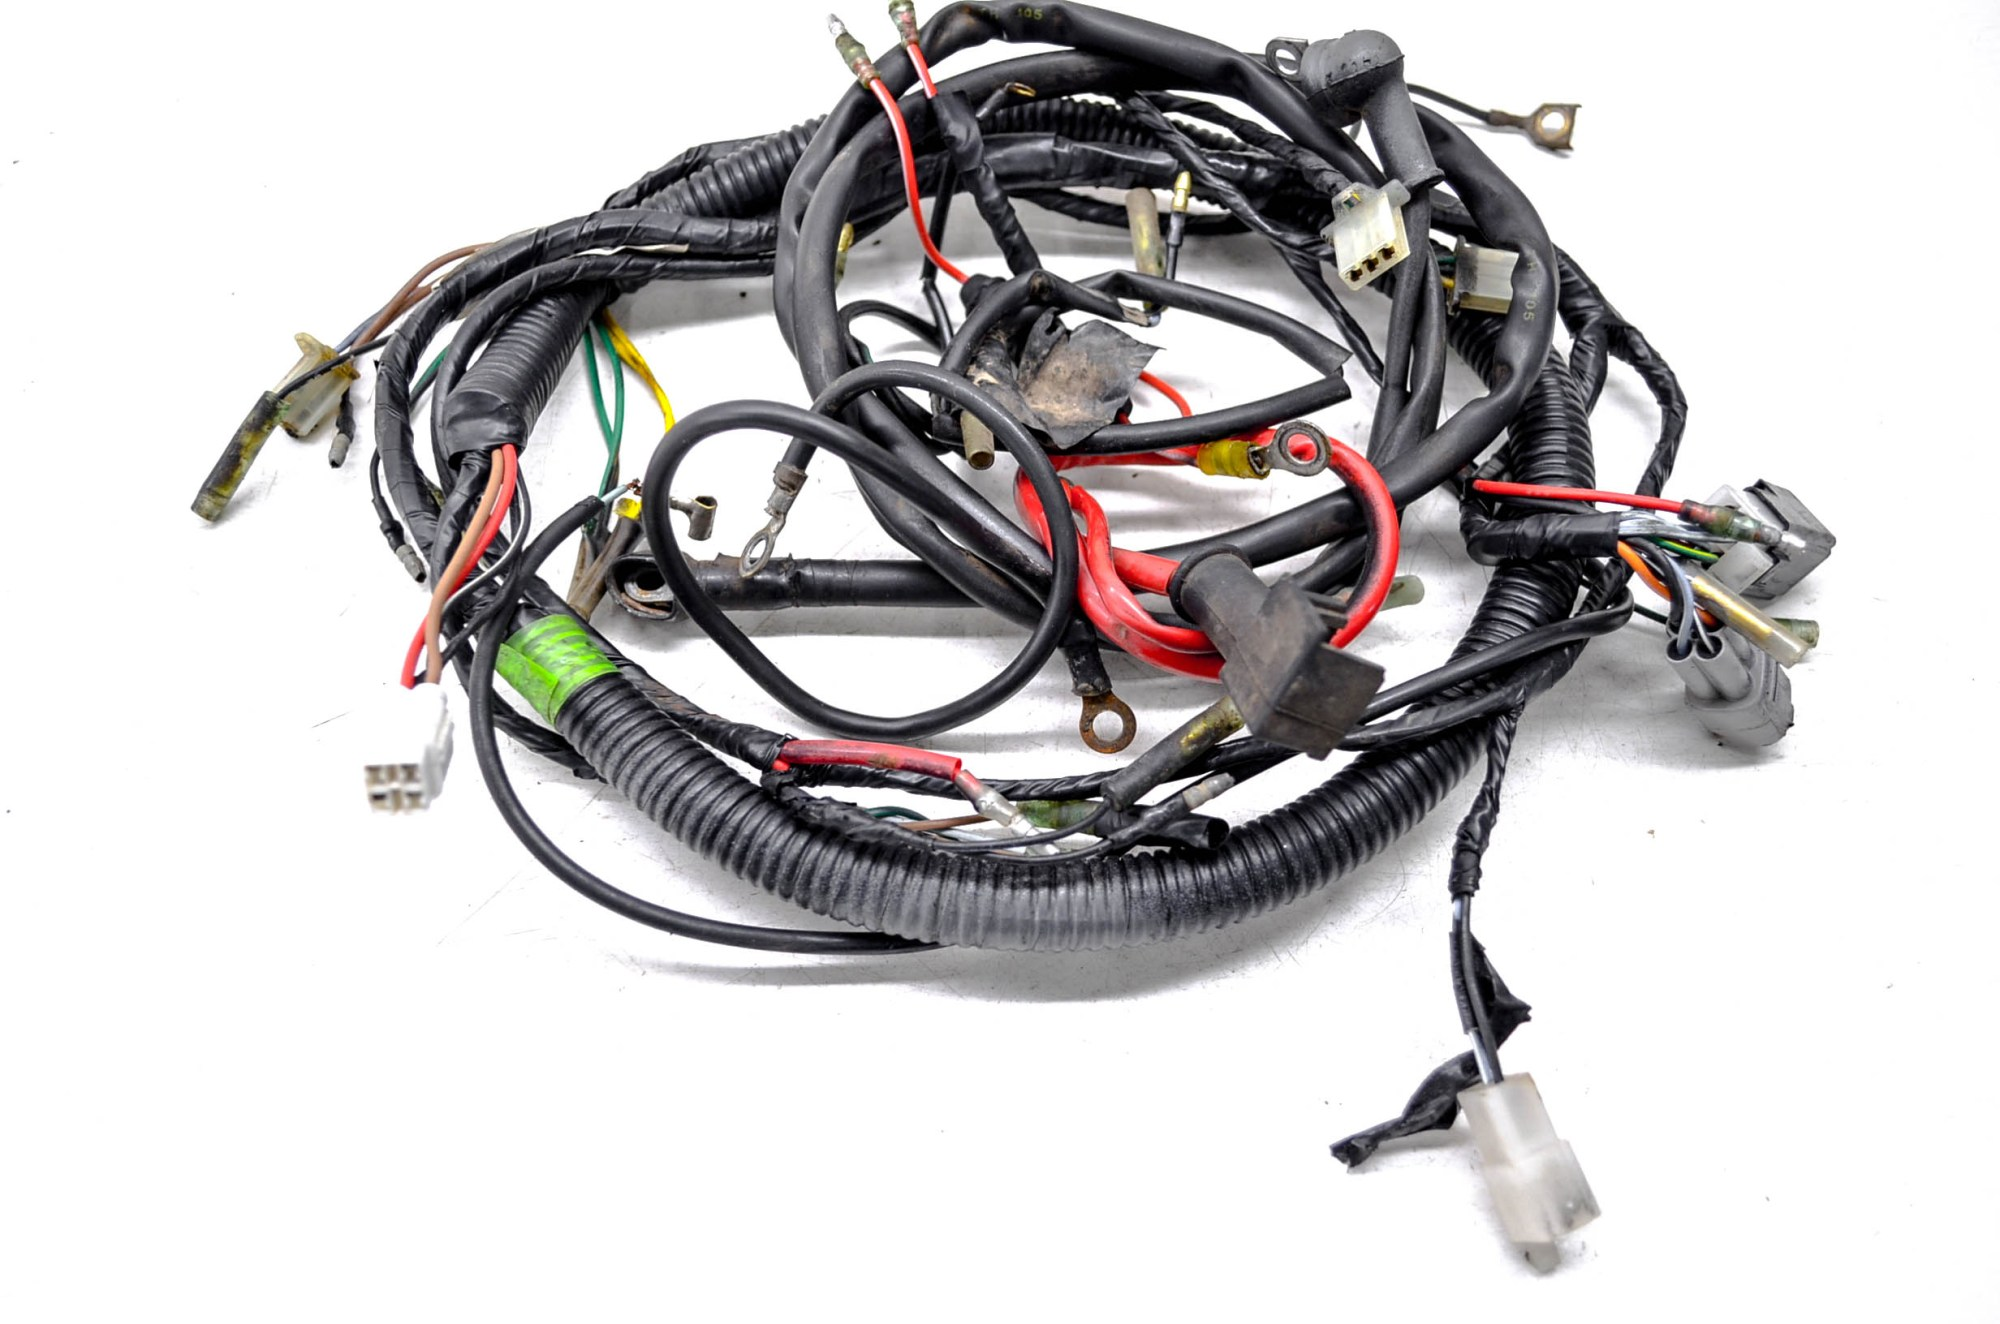 hight resolution of wiring harness rhode island wiring library wiring harness connectors 98 yamaha timberwolf 250 2x4 wire harness